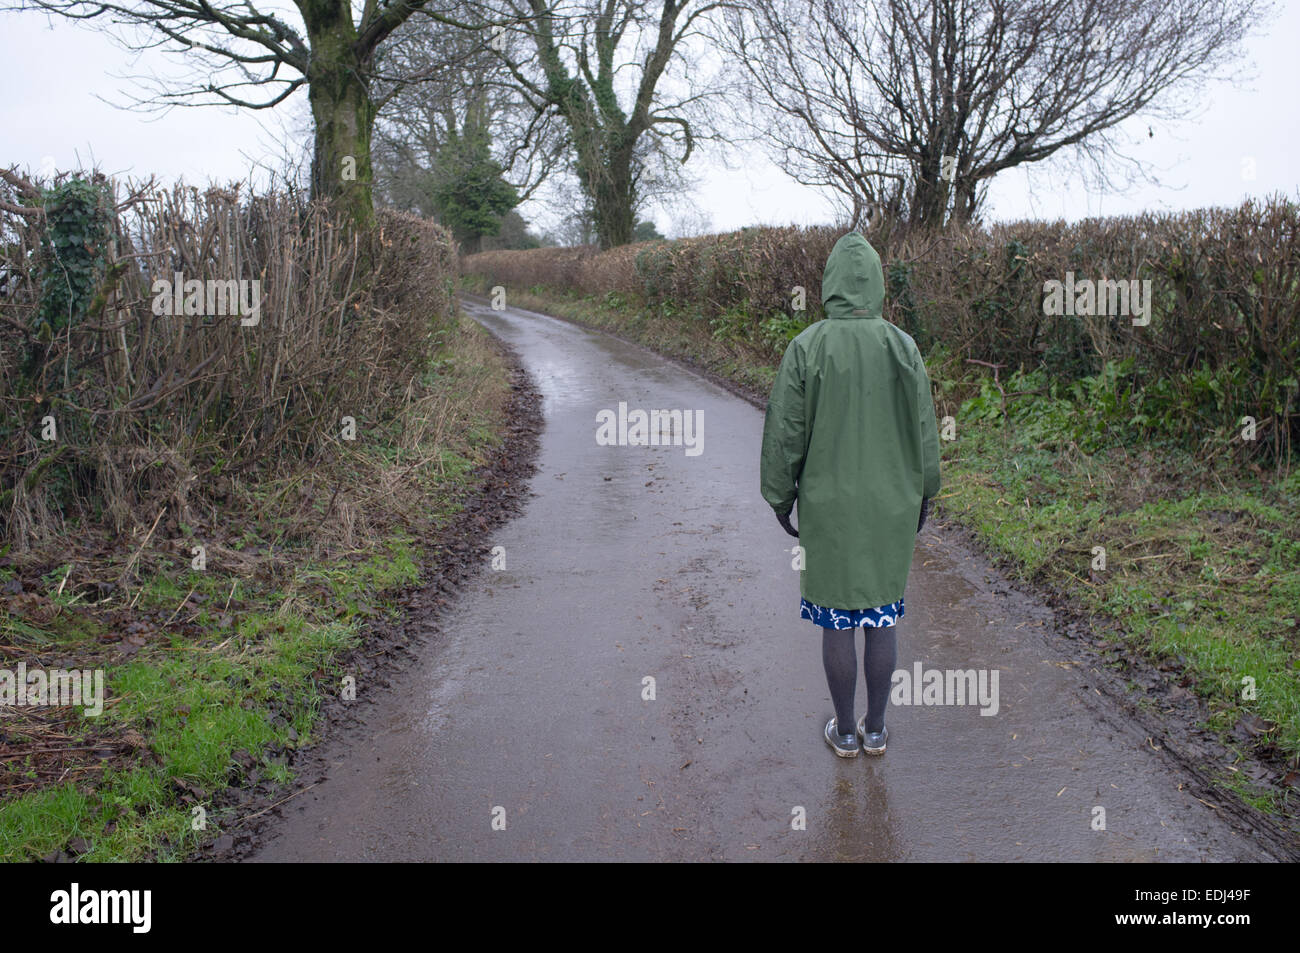 A woman stands on a country lane - Stock Image